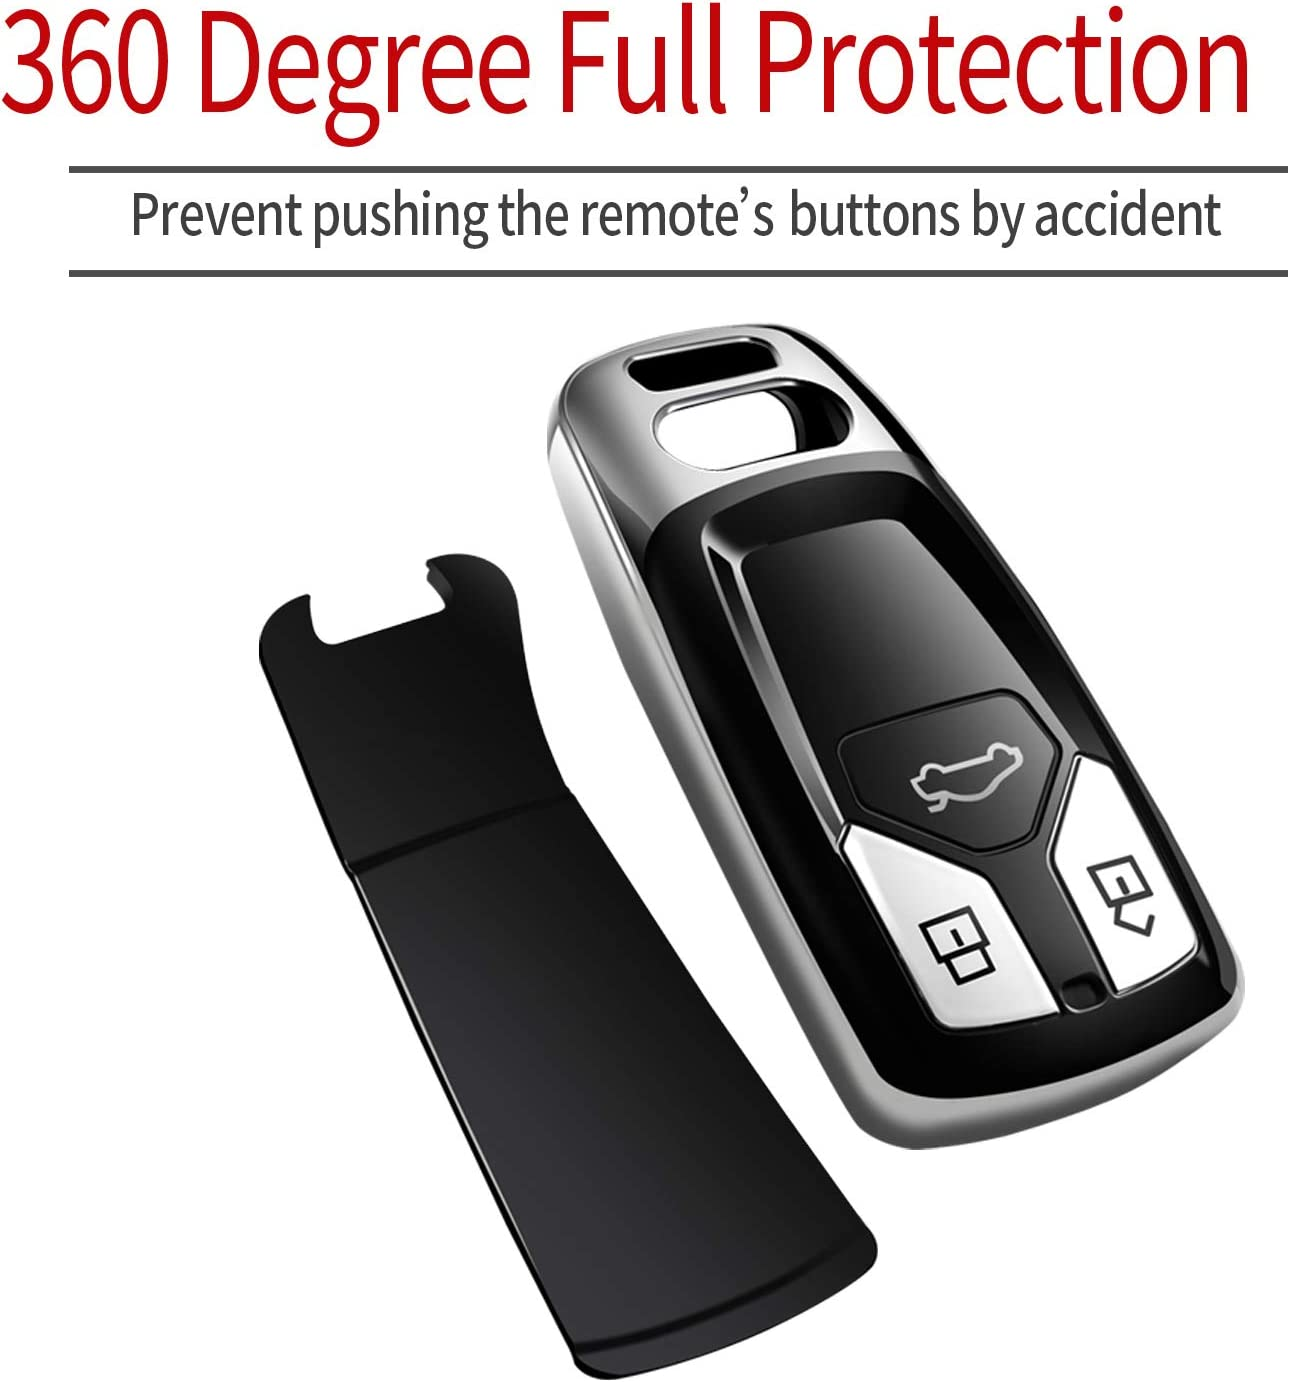 Silver Special Soft TPU Key Case Cover Protector Compatible with Audi A4 Q7 Q5 TT A3 A6 SQ5 R8 S5 Smart Key Tukellen for Audi Key Fob Cover